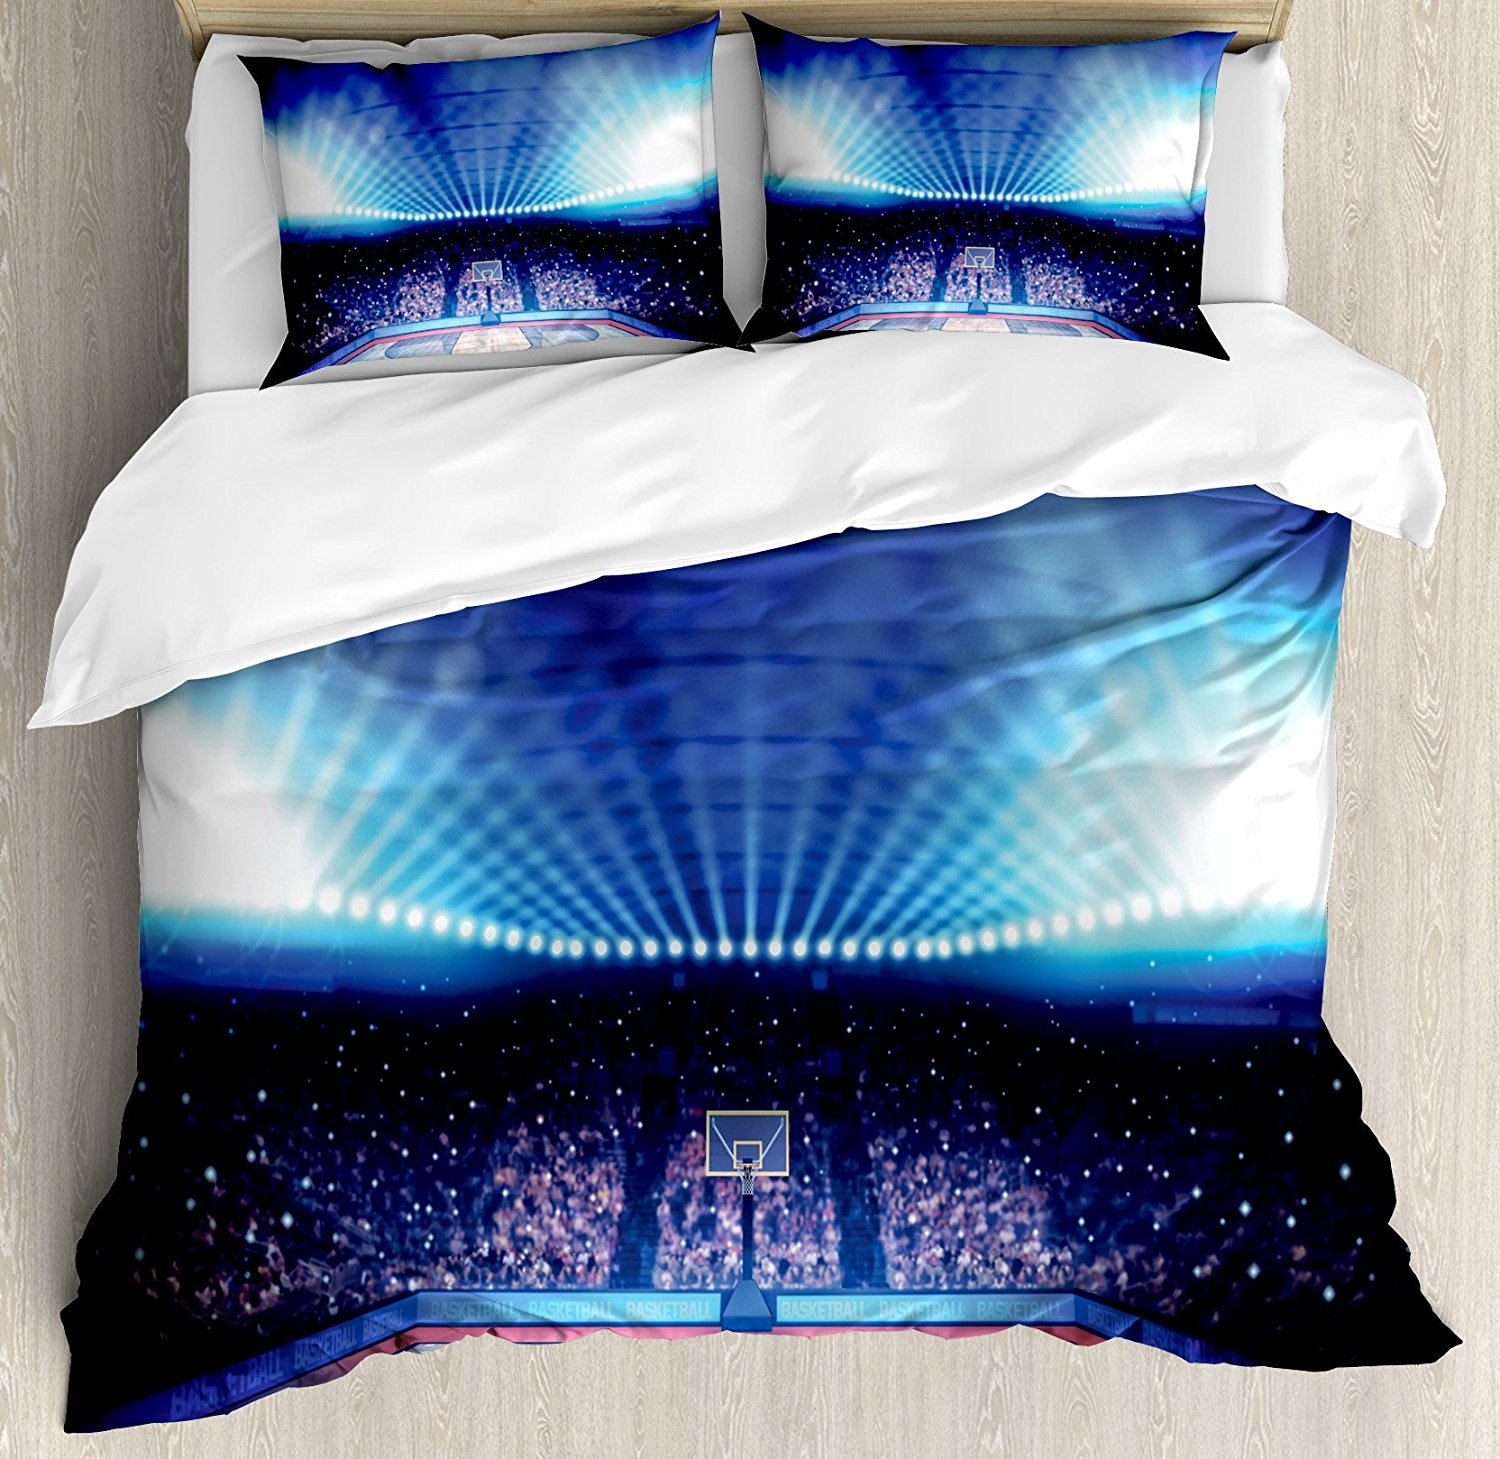 Sports Duvet Cover Set Basketball Arena Court with Fans And Flashlights Competition Theme Game Excitement Print 4pcs Bedding Set